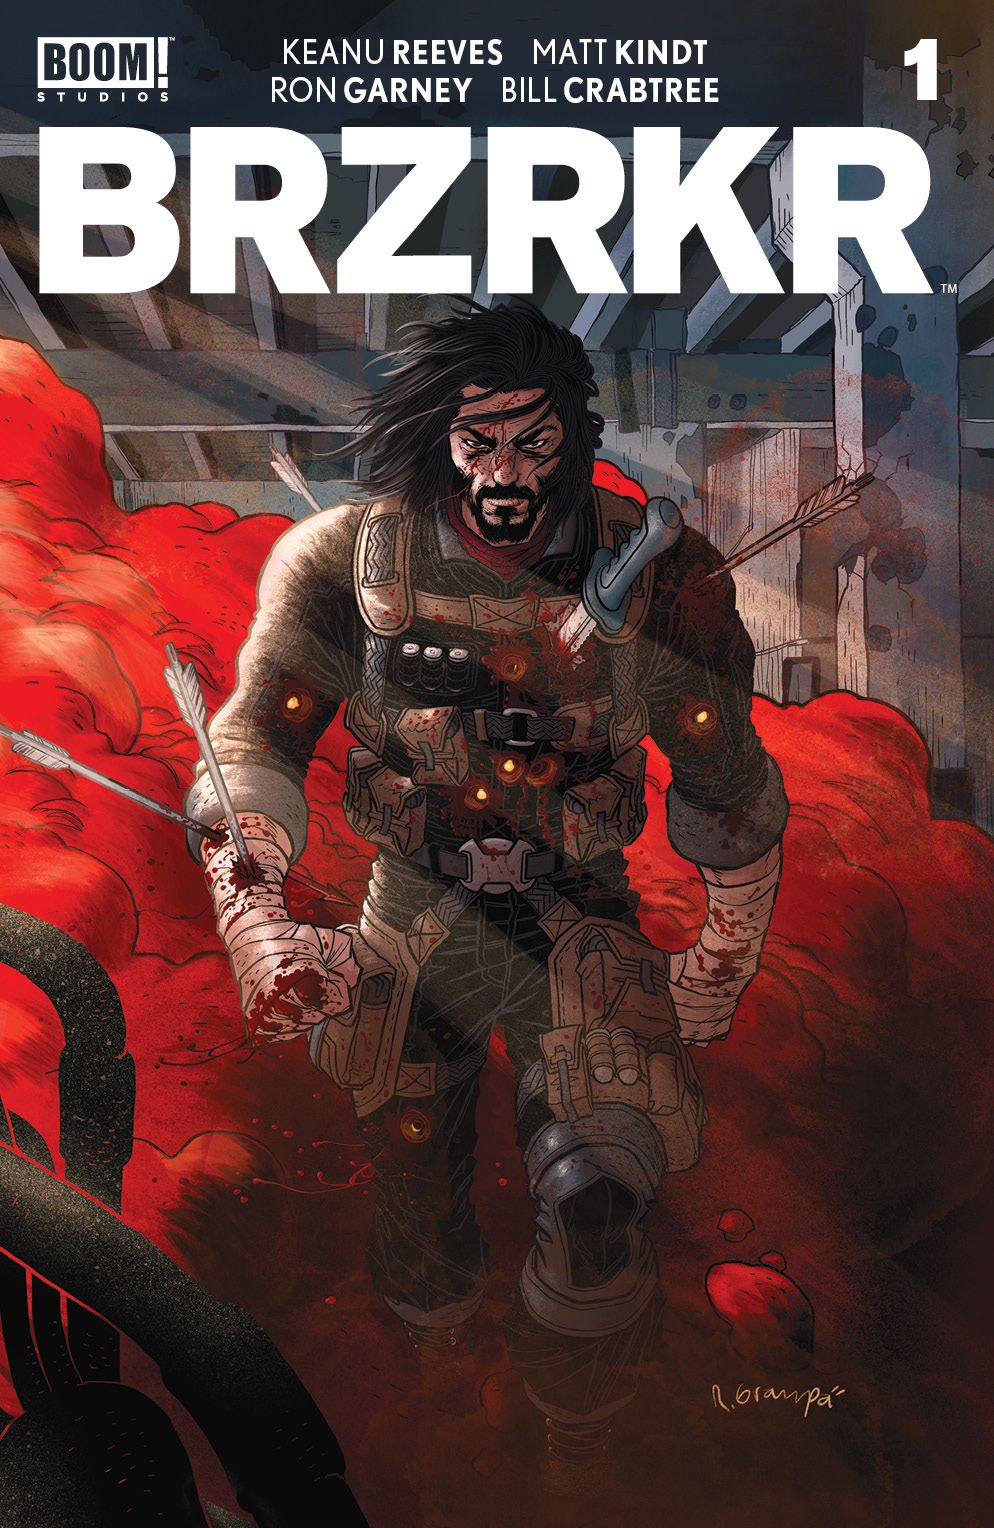 BRZRKR_001_Cover_A_Main_001_LOW ComicList: BOOM! Studios New Releases for 03/03/2021